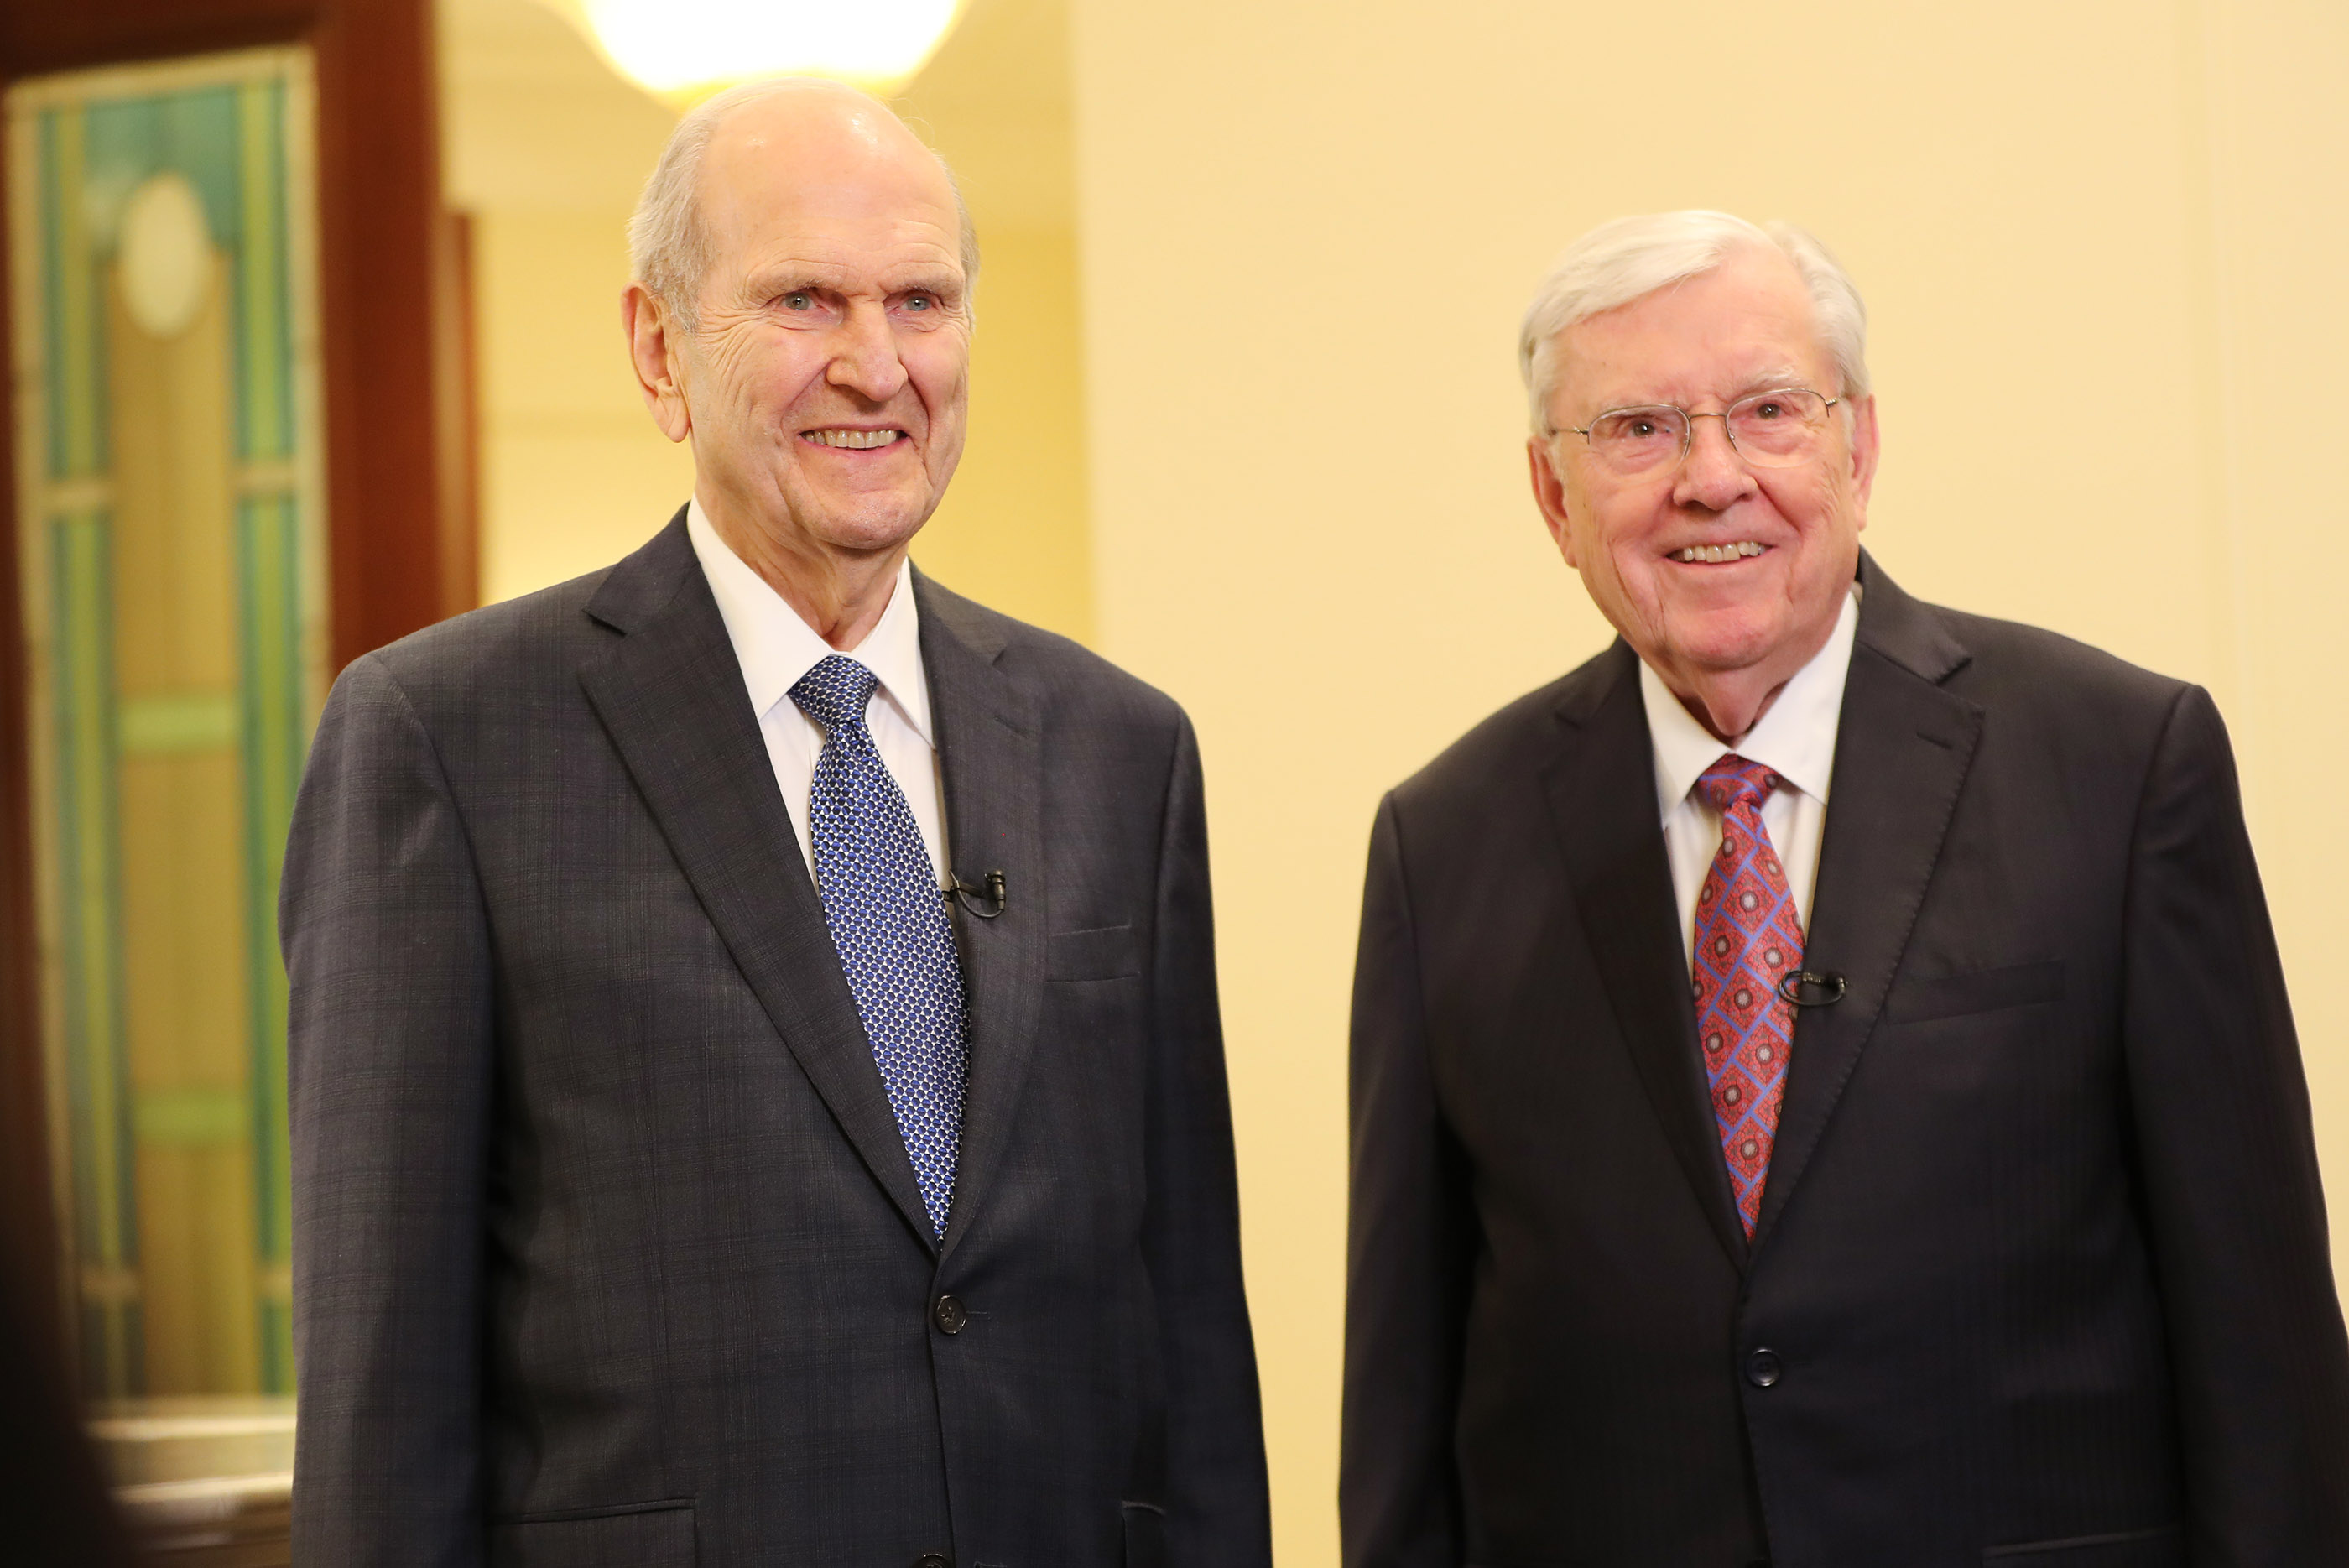 President Russell M. Nelson and President M. Russell Ballard, Acting President of the Quorum of the Twelve Apostles, speak to media after the dedication of the Rome Italy Temple in Rome, Italy, on Sunday, March 10, 2019.